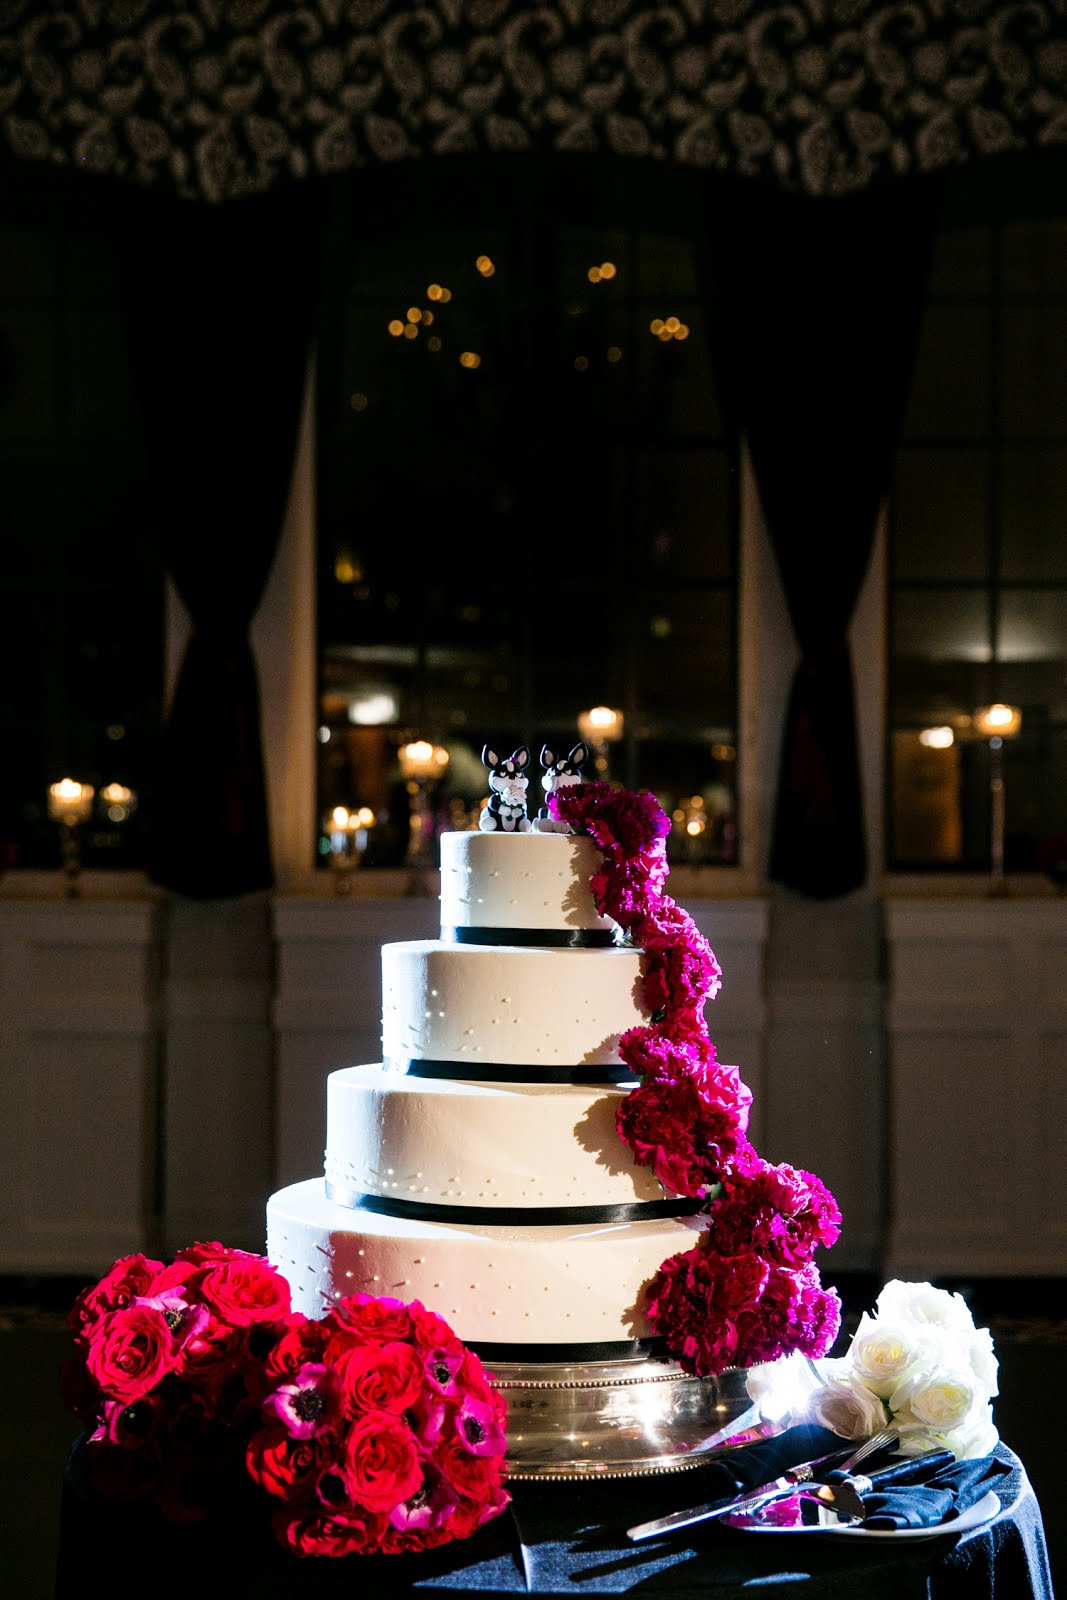 Keep your wedding cake on trend chicagostyle weddings your wedding cake is one of the most iconic symbols of your special day a completely custom design tailored to the bride and groom biocorpaavc Image collections